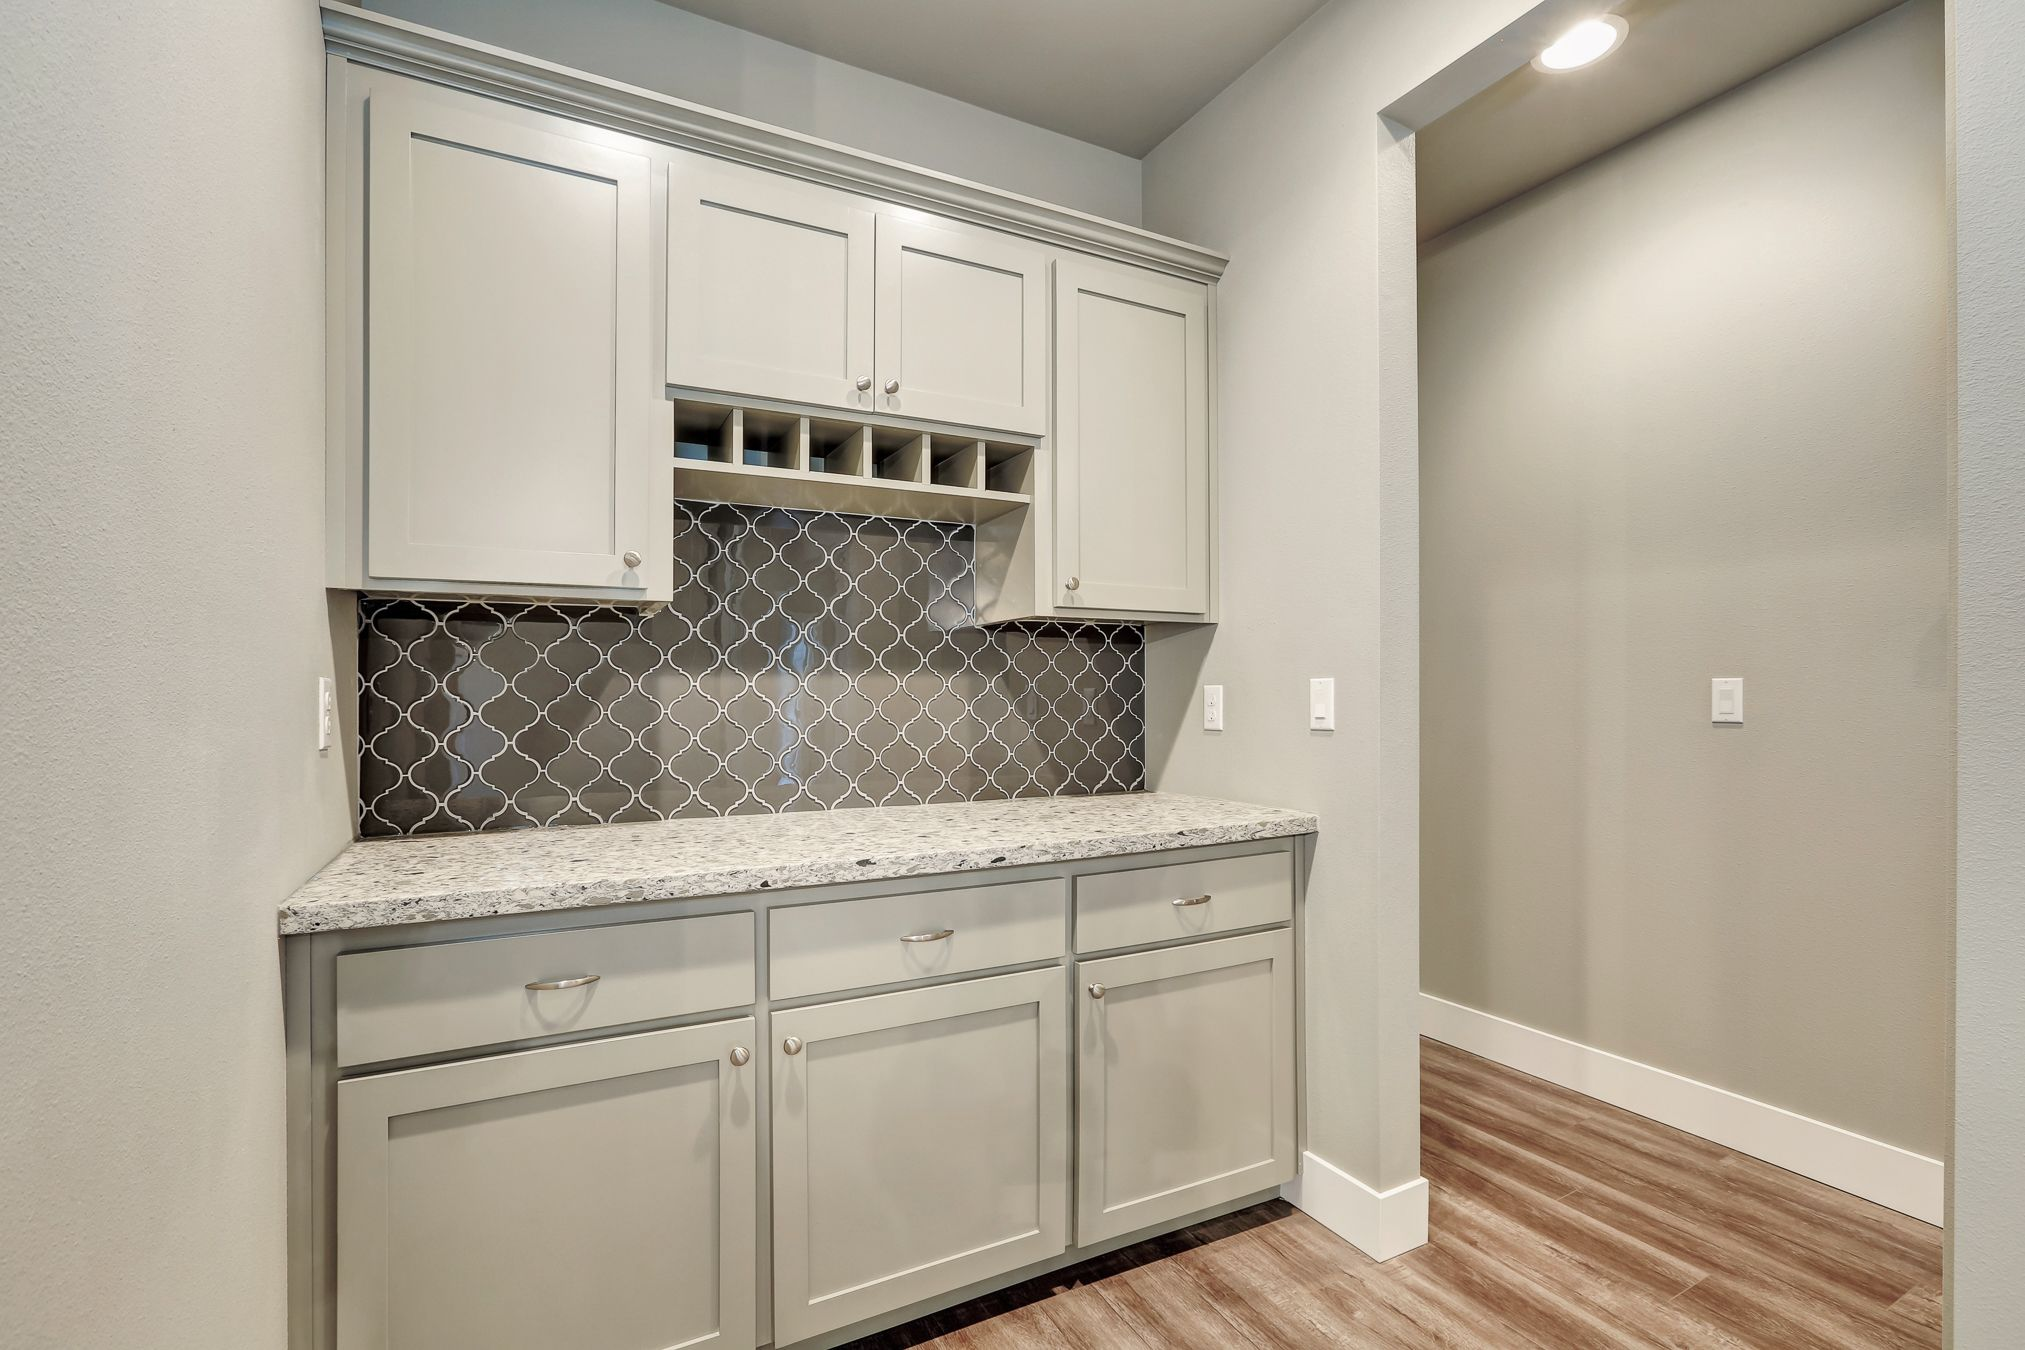 Painted Sherwin WilliamsDorian gray quartz counters and